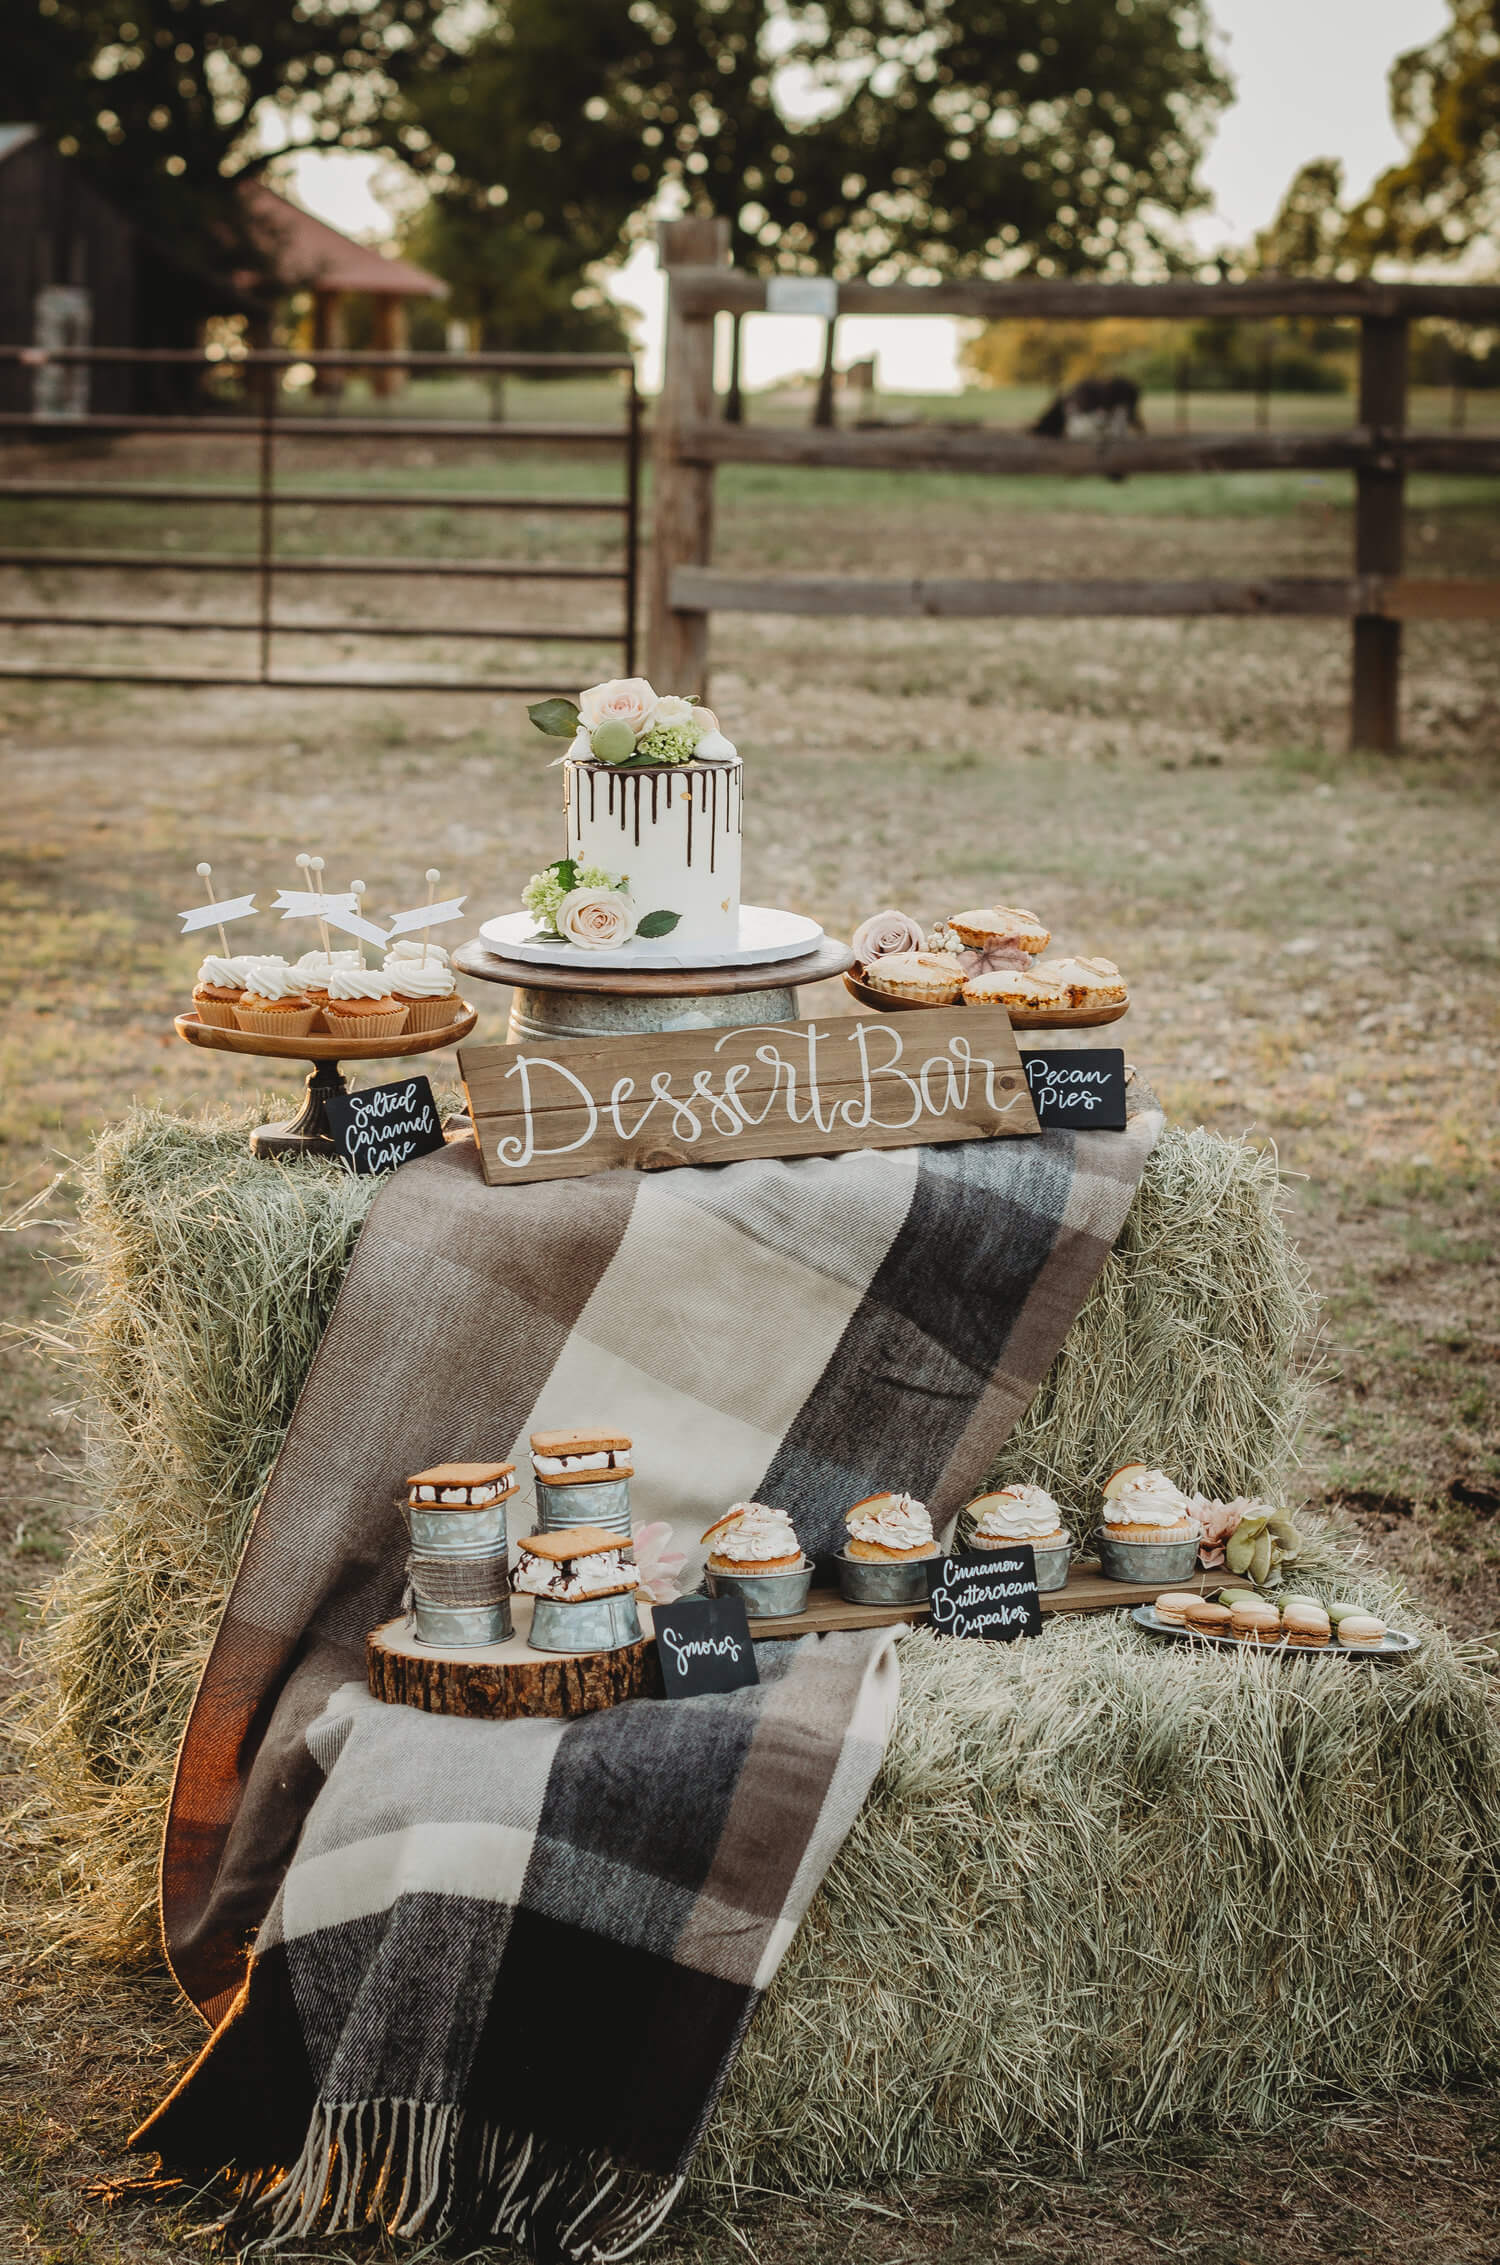 This rustic bridal shower dessert bar is created on hay bales with a flannel throw. Lots more bridal shower ideas from this Fall in Love party theme can be found on the Mint Event Design Blog www.minteventdesign #bridalshowers #bridalshowerideas #rusticwedding #rusticbridalshower #bridalshowerdecor #farmwedding #partyideas #fallbridalshower #dessertbar #bridaslshowerdessert #minidesserts